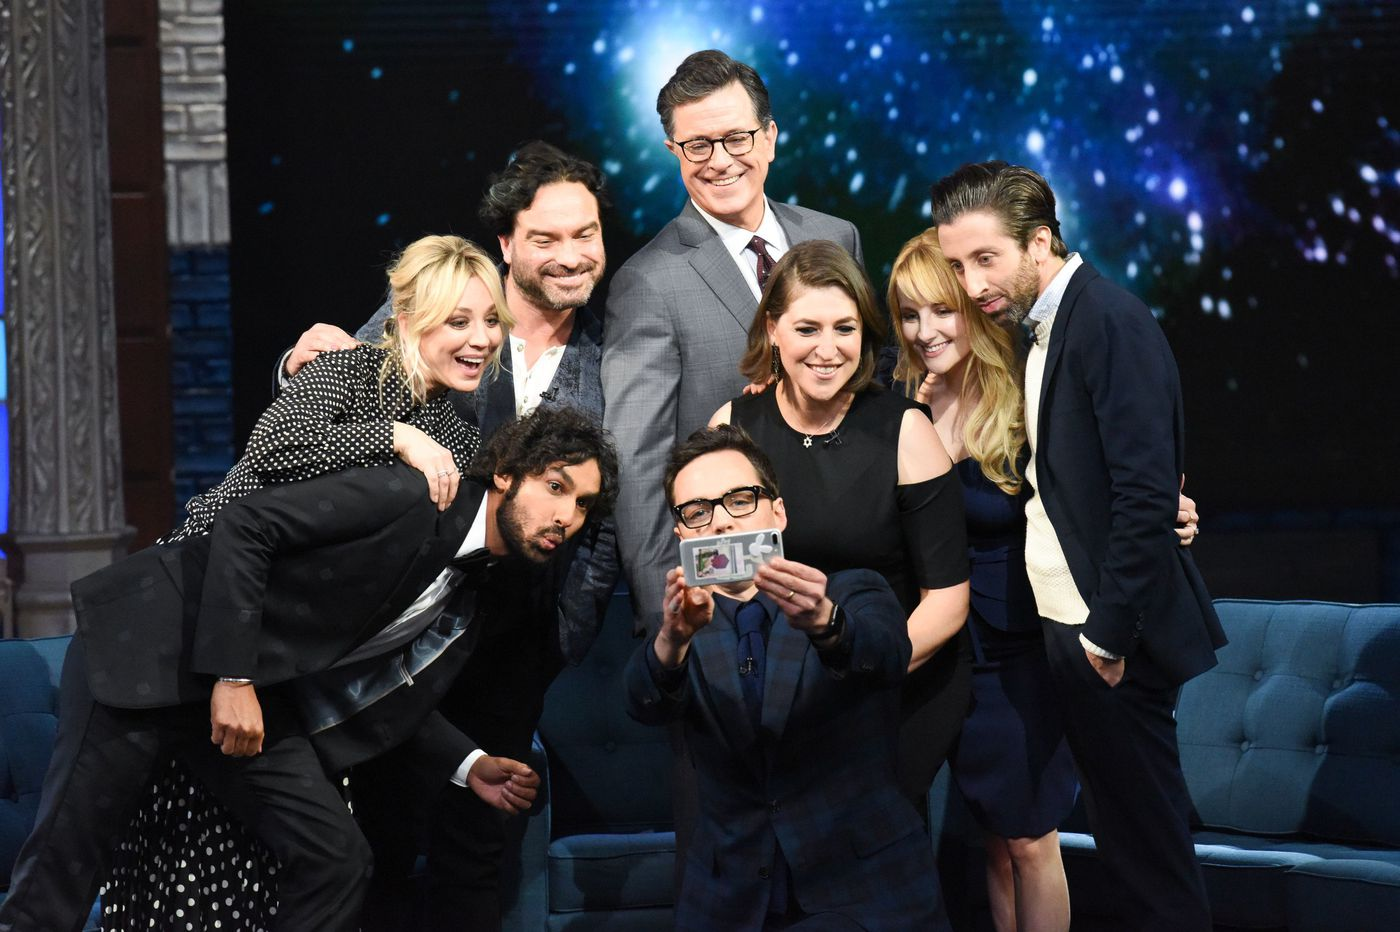 'Big Bang Theory' cast visits Stephen Colbert, drops a few secrets